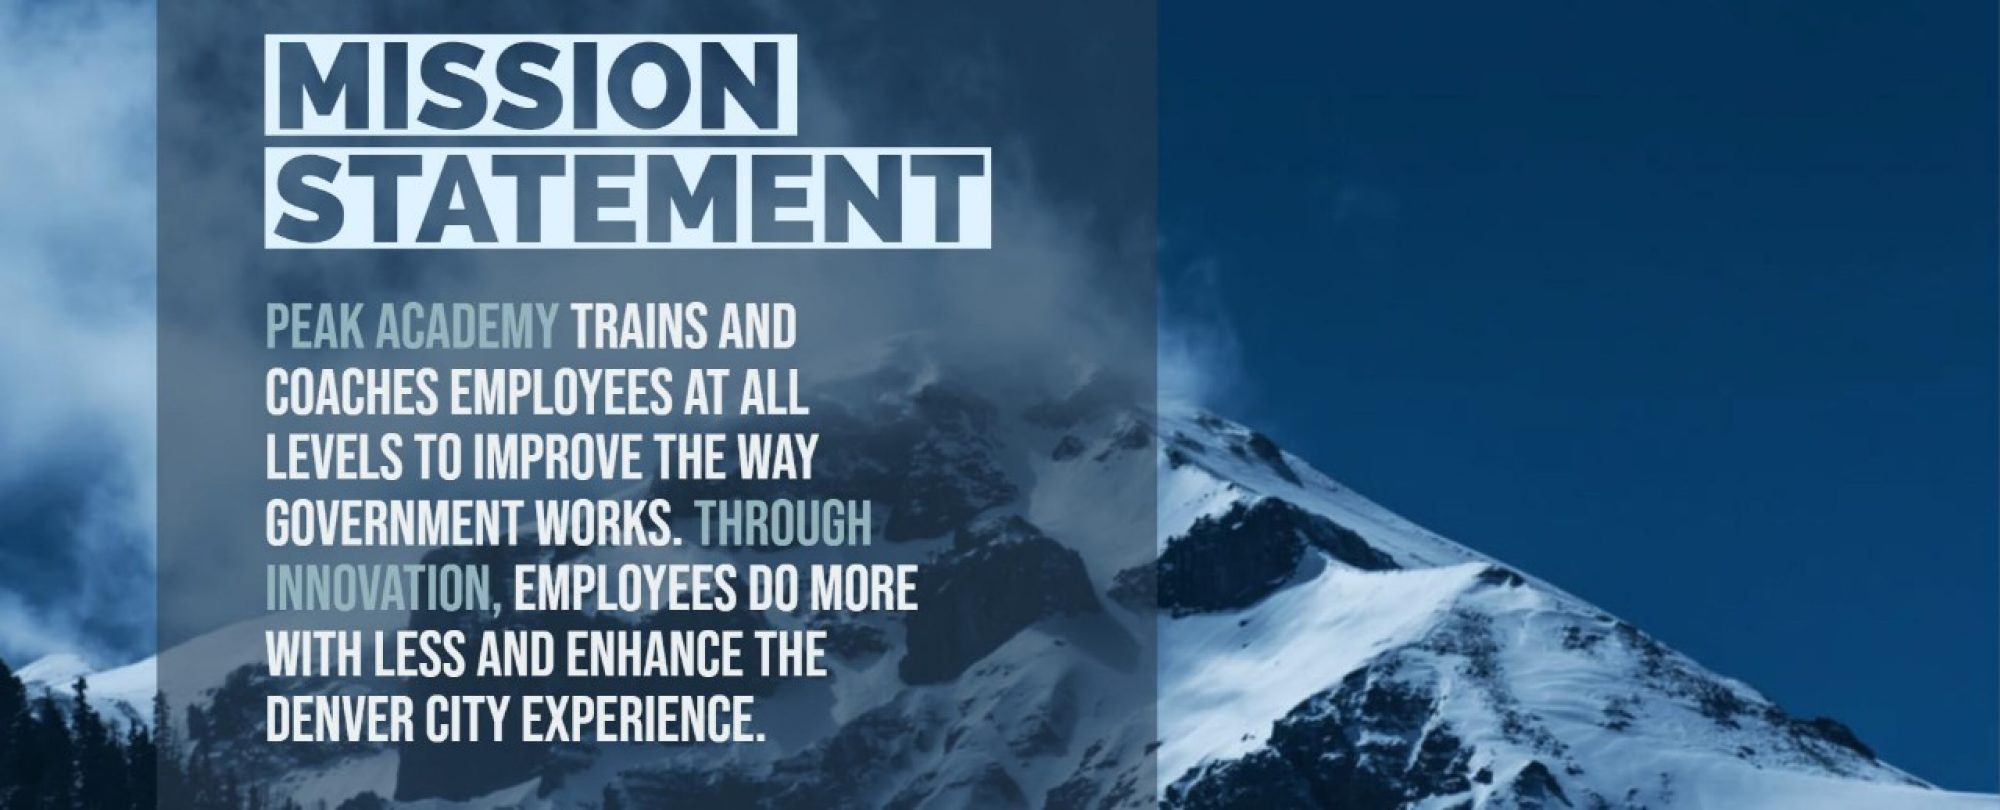 Mission Statement:  Peak Academy trains and coaches employees at all levels to improve the way government works. Through innovation, employees do more with less and enhance the Denver city experience.